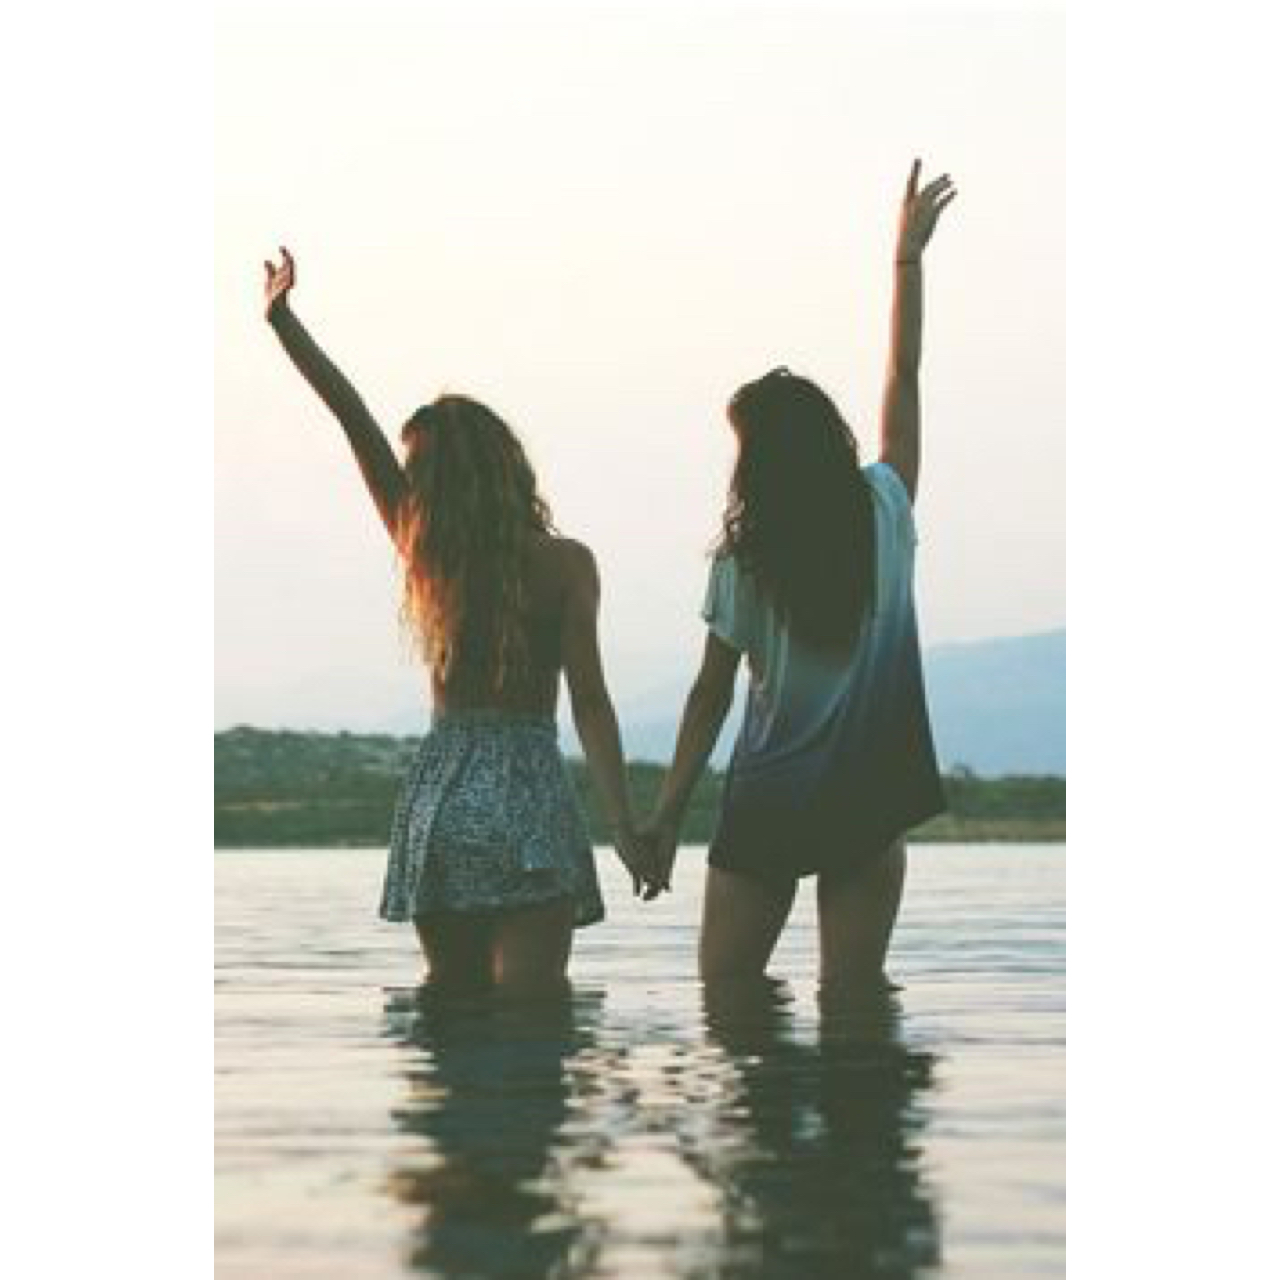 Best Friends Besties Cute And Forever Image 3305186 On Favim Com